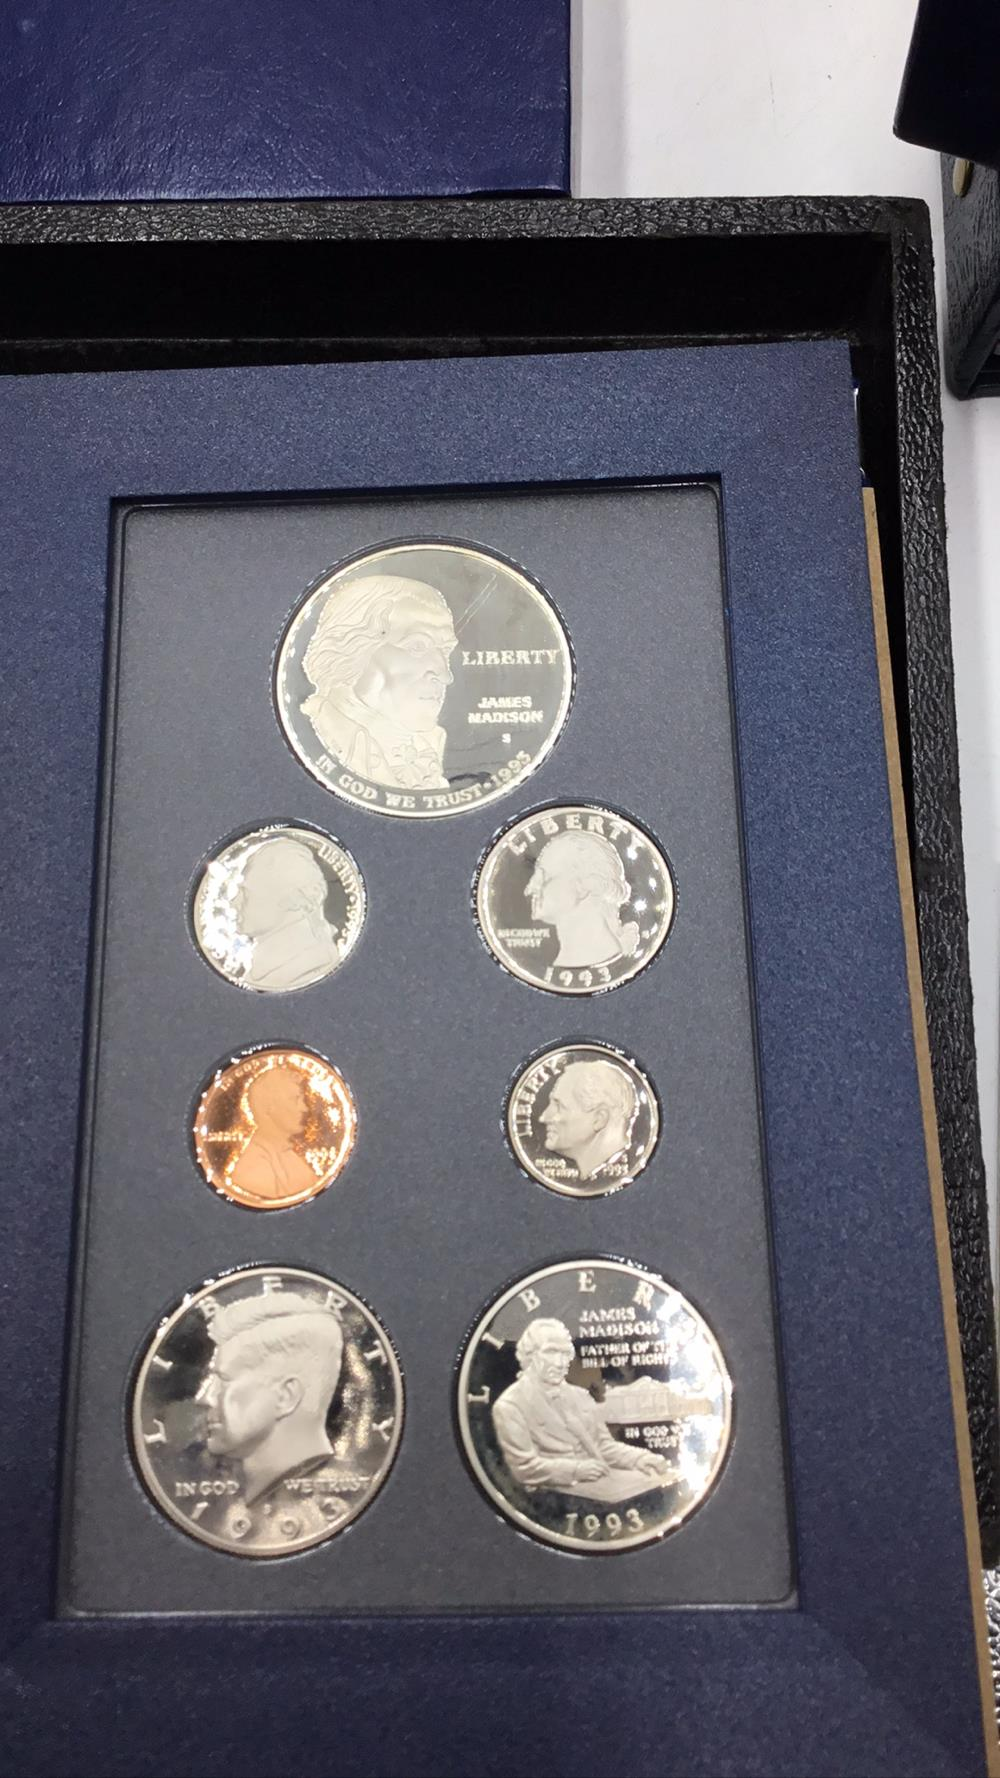 Lot 145: United States mint bill of rights commemorative